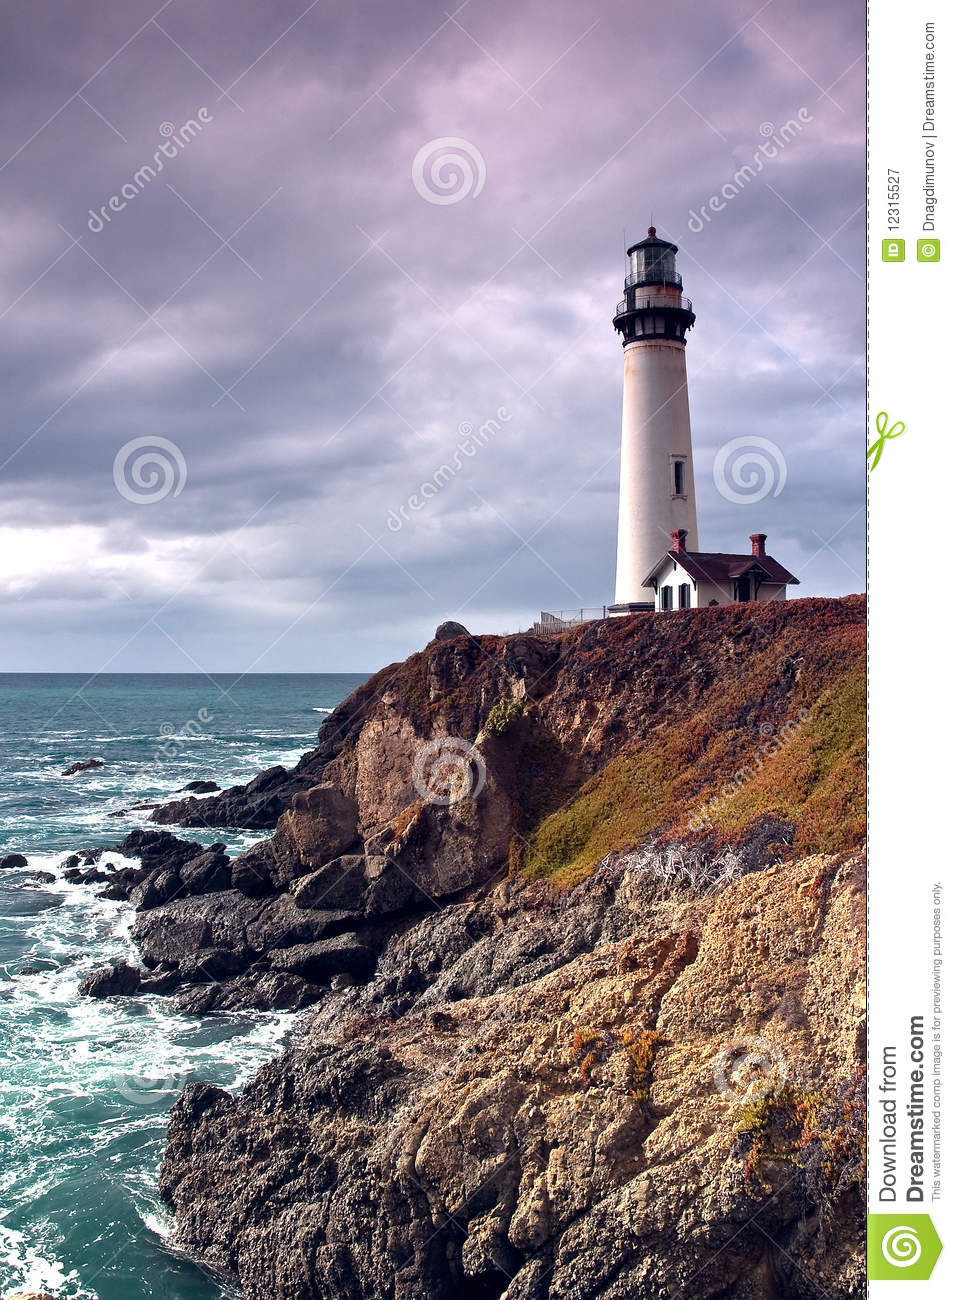 3d Scenery Wallpaper Lighthouse On A Cliff And Ocean Royalty Free Stock